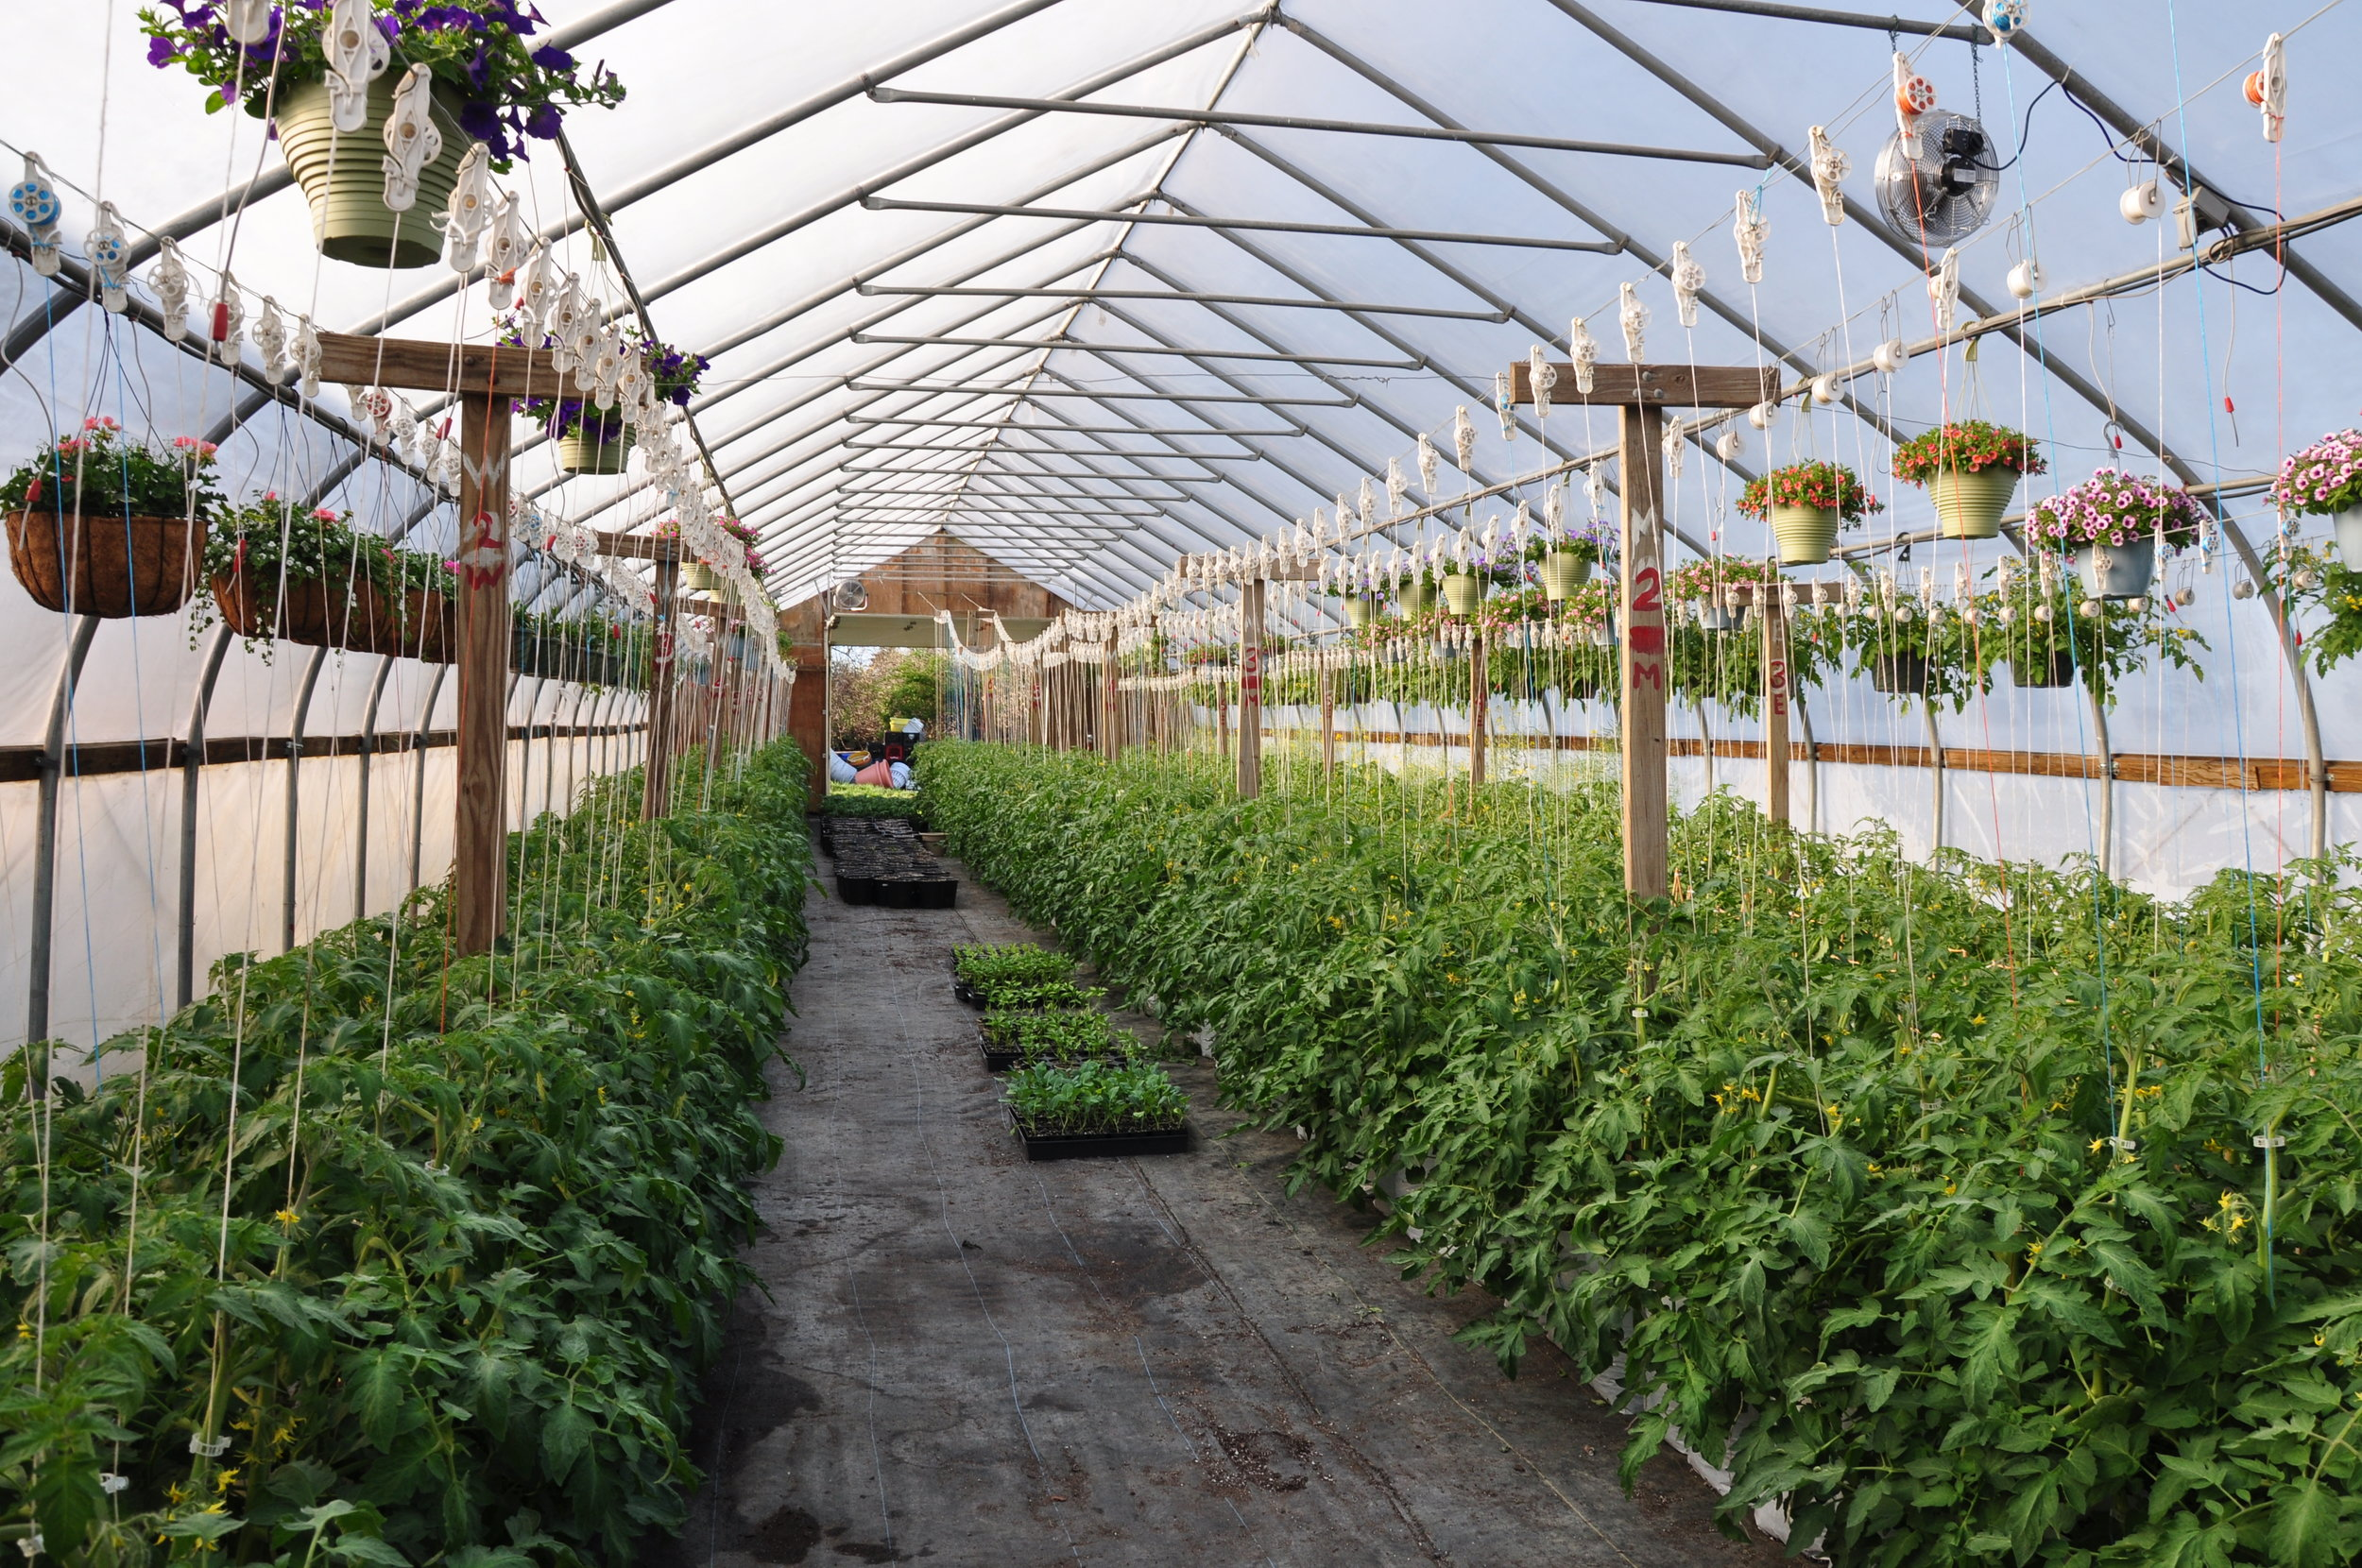 """A look at just a few of the picturesque spots on Young Family Farm, a 300-acre property with a five-acre pond, 3/4 mile of irrigation, three greenhouses — one for tomatoes, one for growing retail flowers and one for """"babies"""" or seeds — and a spacious retail farm stand on West Main Road in Little Compton, RI."""